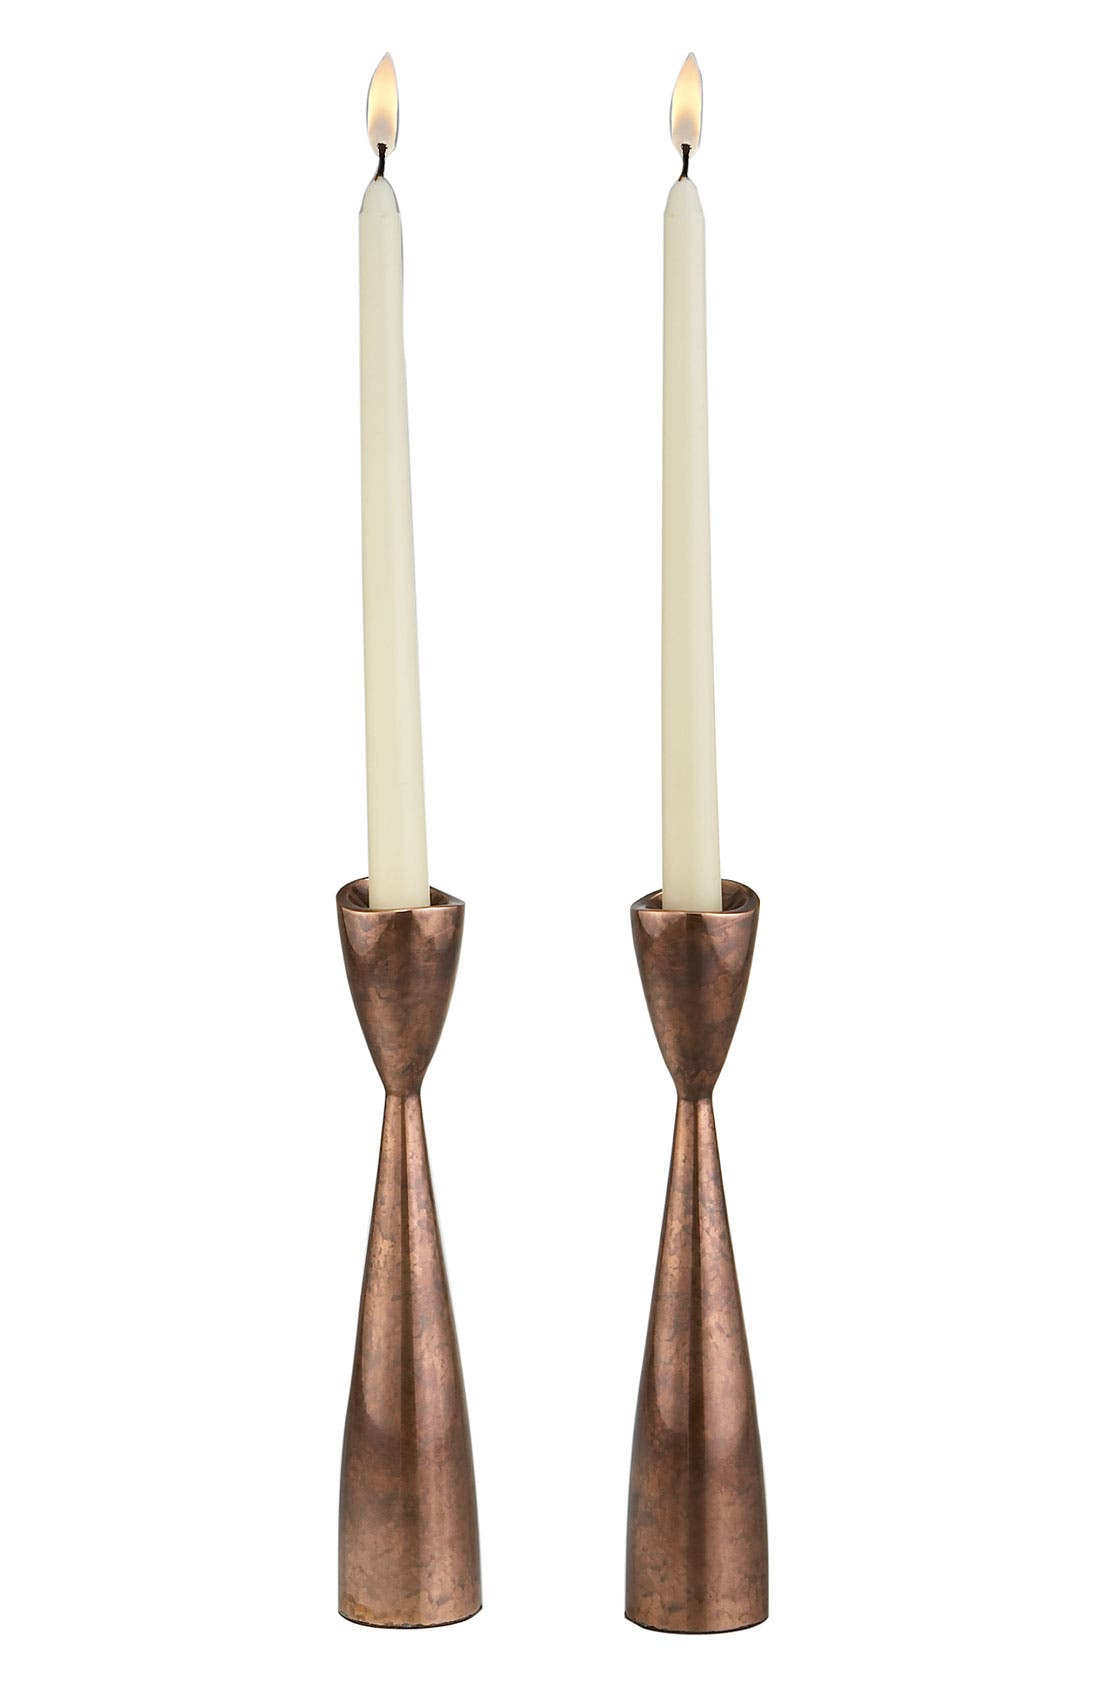 Alternate Image 1 Selected - Nambé 'Heritage Pebble' Candlesticks (Set of 2)